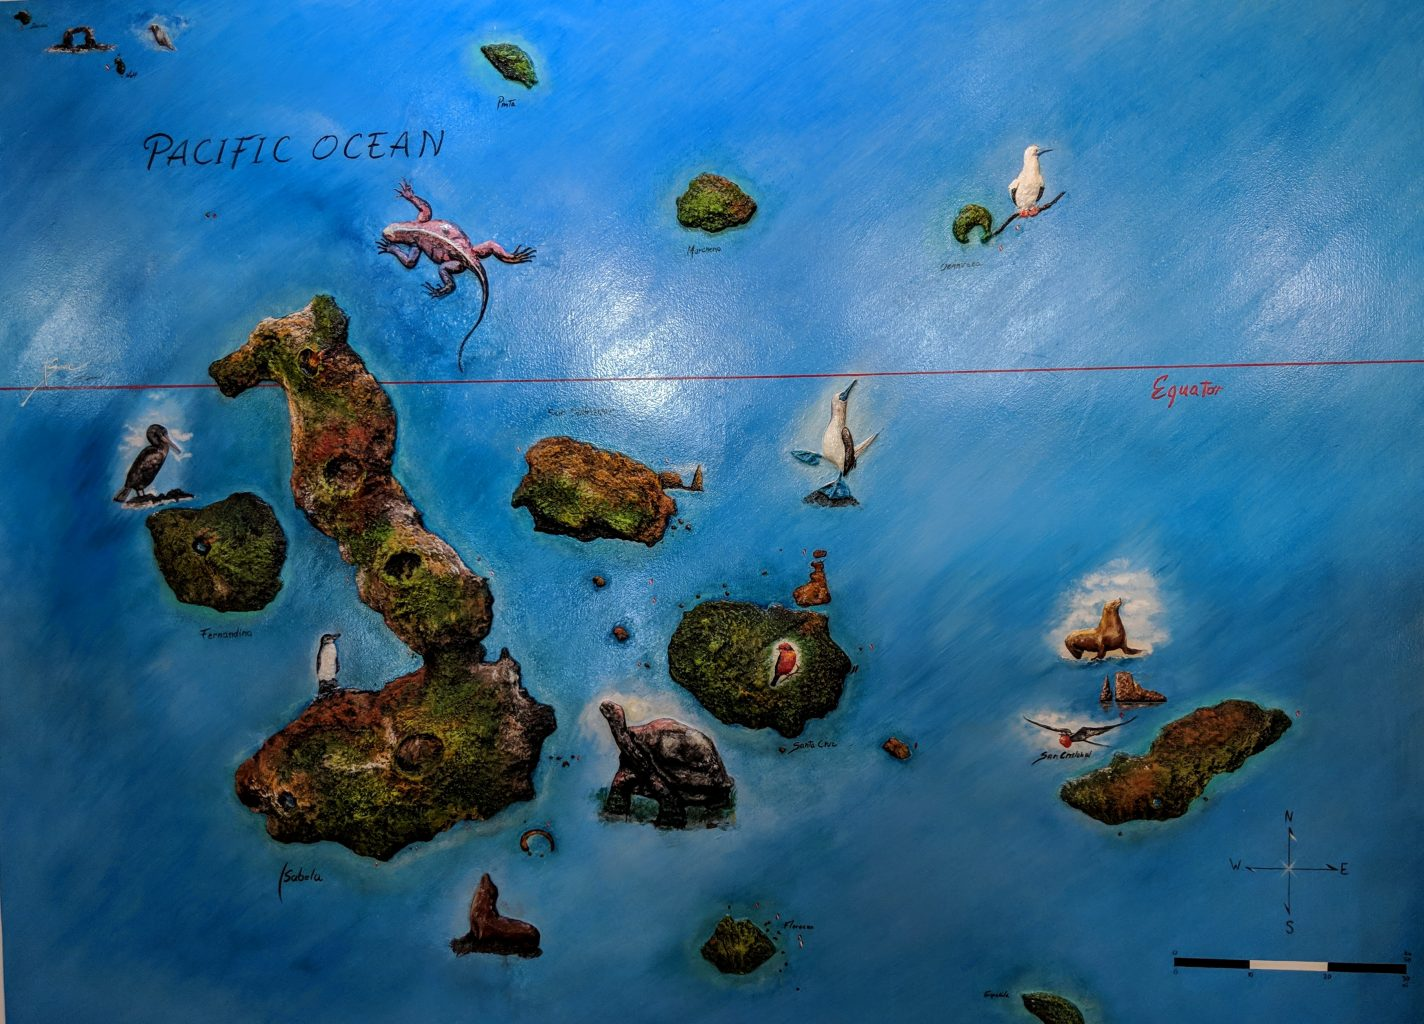 A map of the Galapagos Islands.